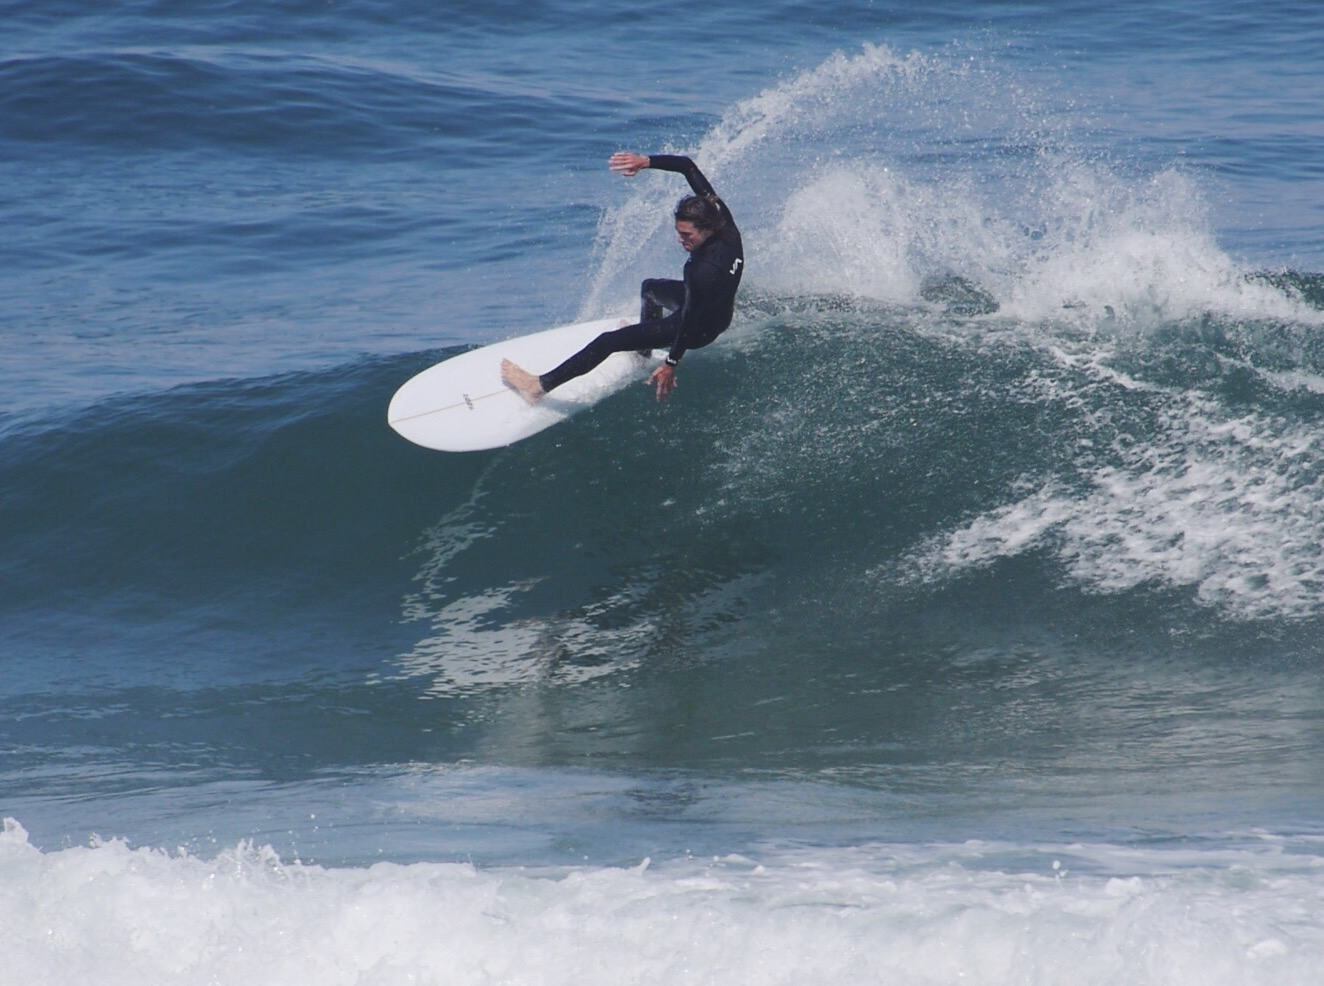 Curren Caples enjoying surf in Hossegor, France.